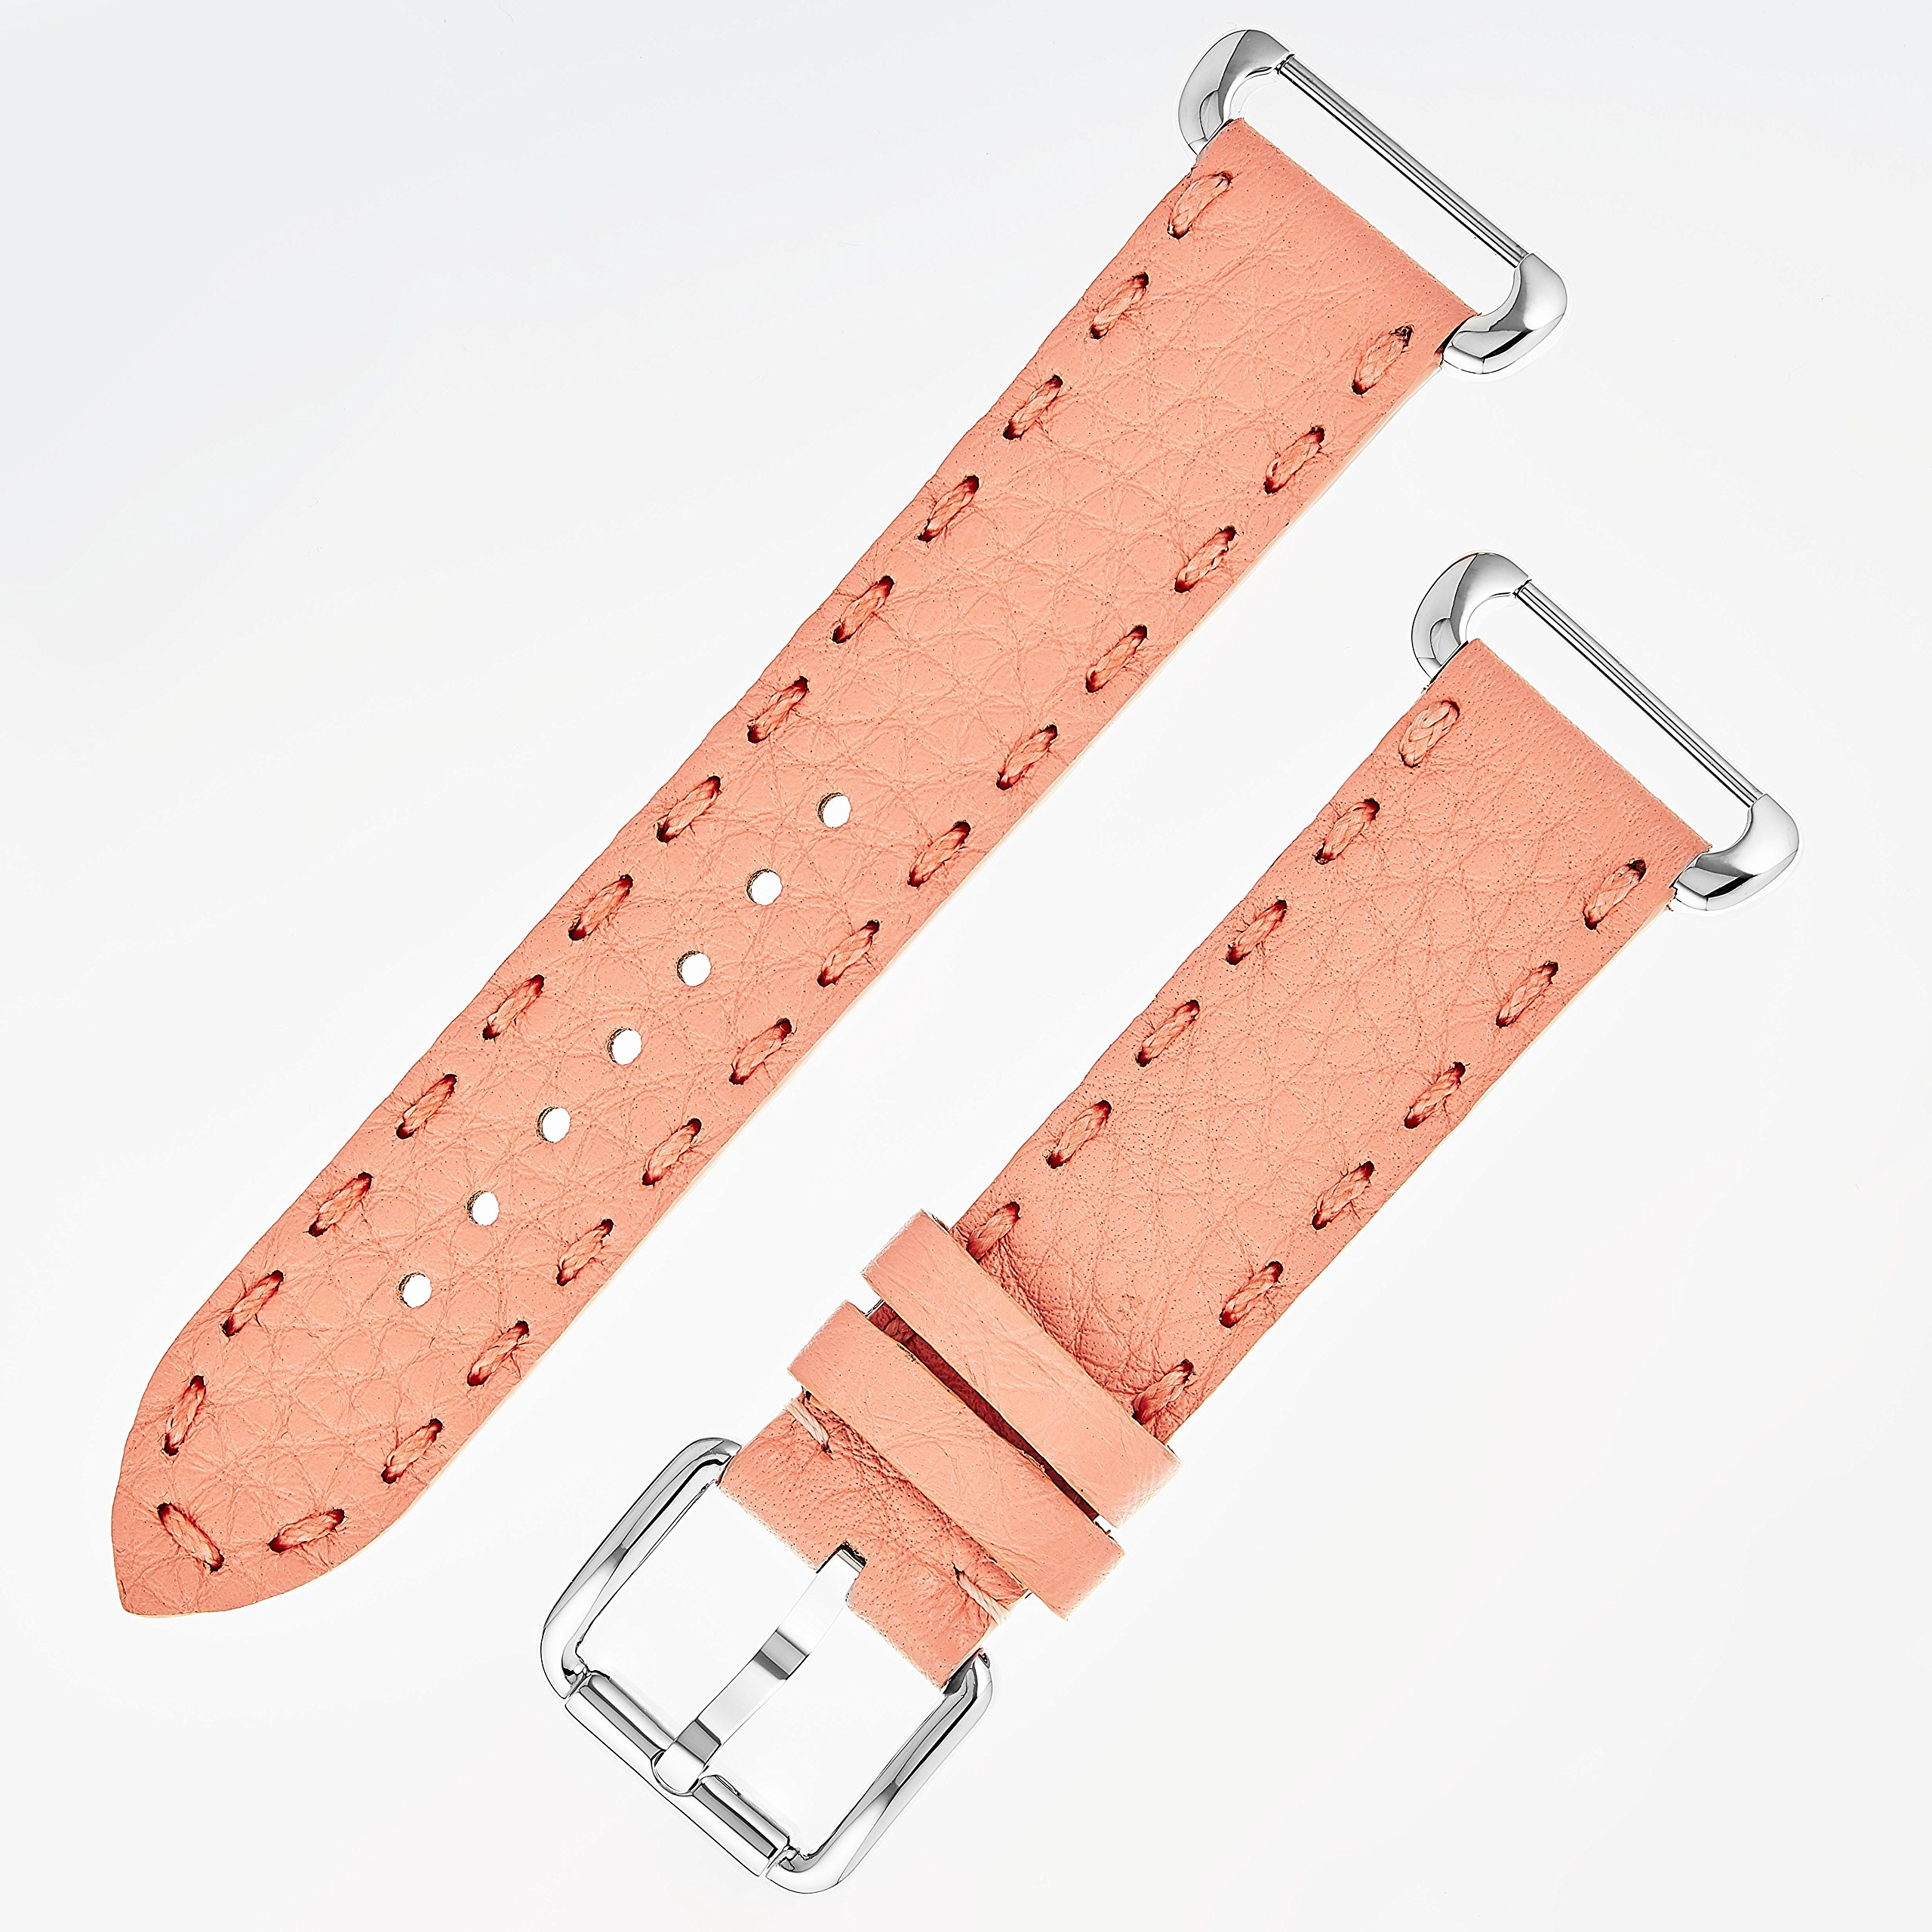 Fendi Selleria Interchangeable Replacement Watch Band - 18mm Peach Calfskin Leather Strap with Pin Buckle SSN18RD7S